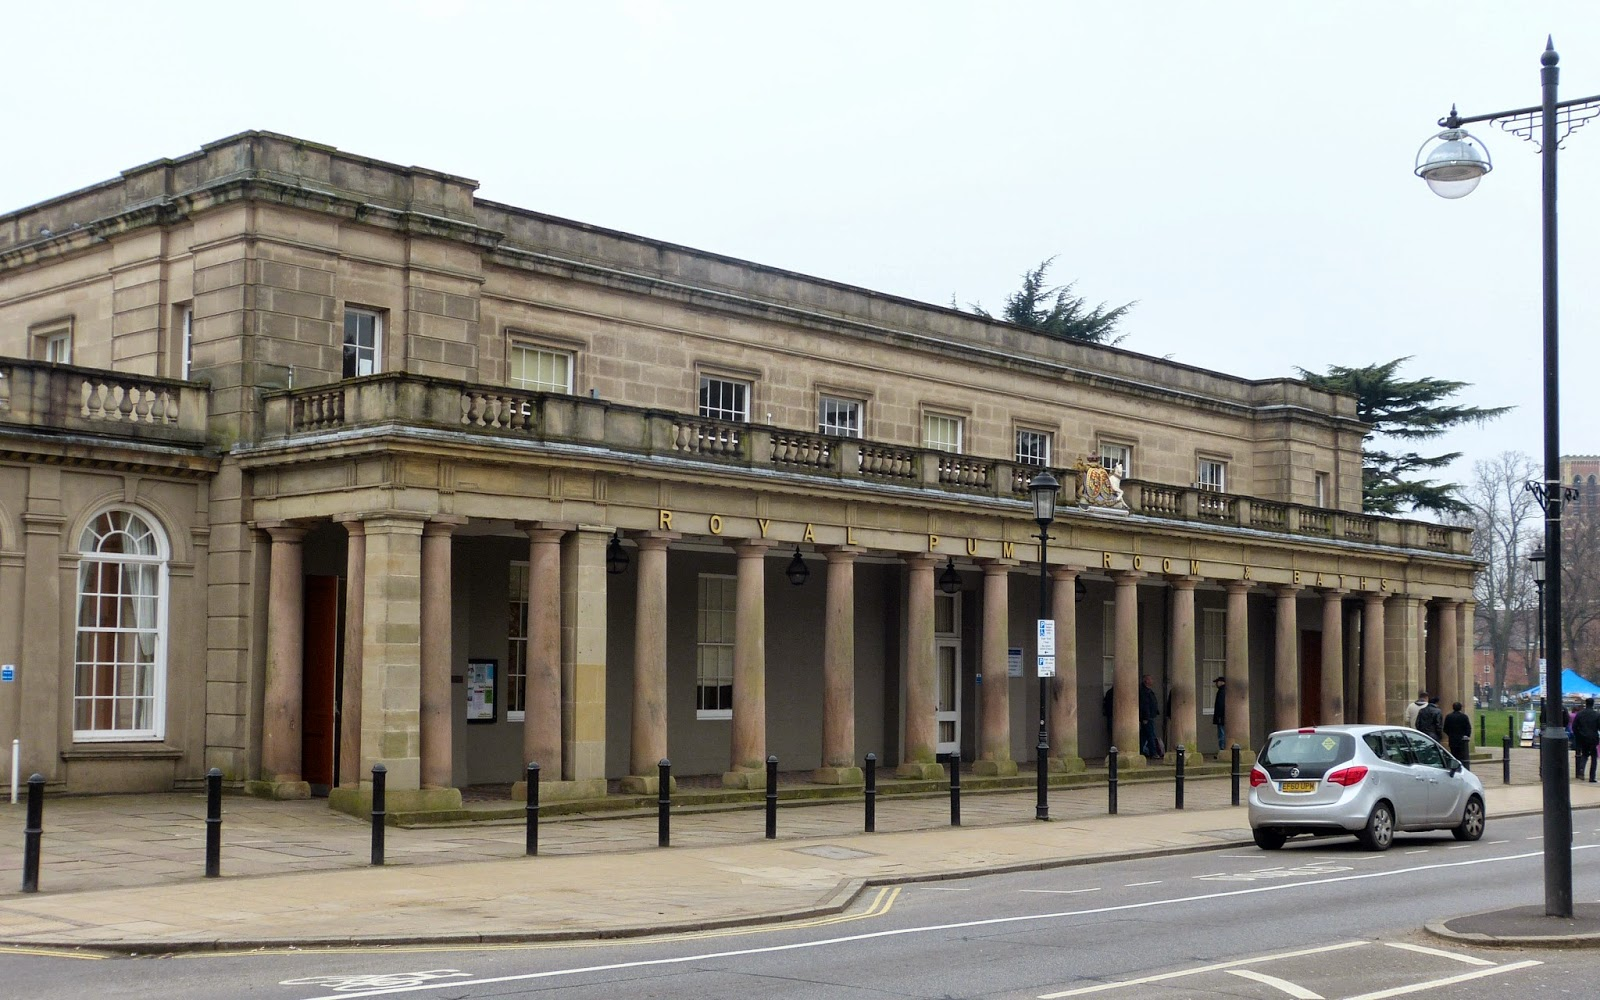 The Royal Pump Room, Leamington Spa